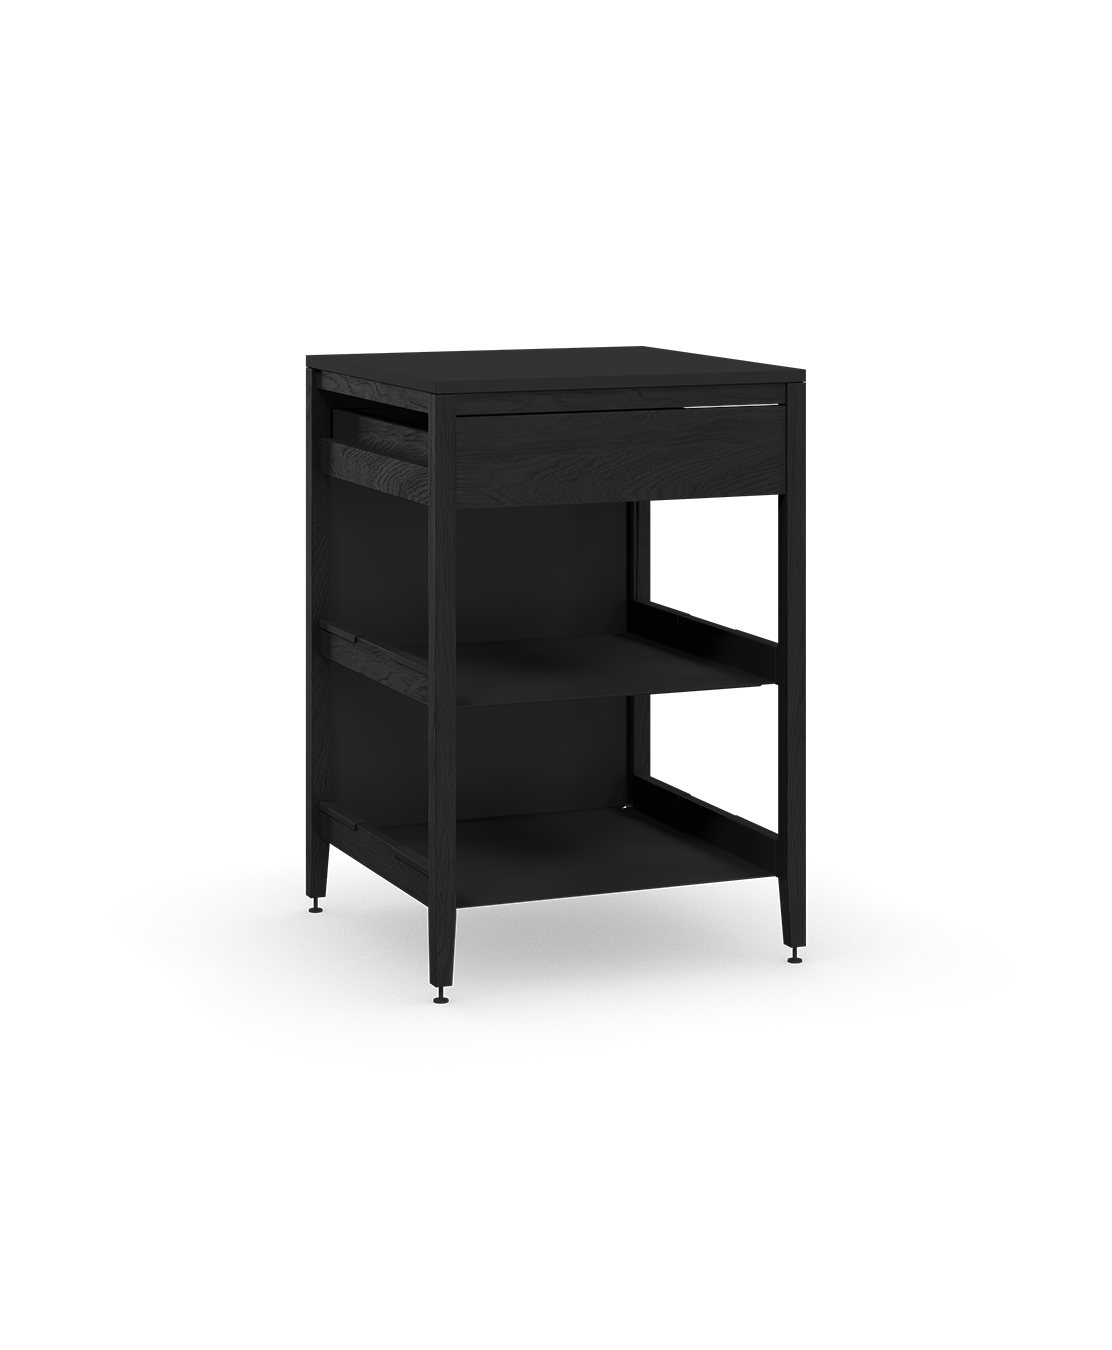 coquo radix midnight black stained oak solid wood modular 2 shelves 1 drawer base kitchen cabinet 27 inch C1-C-27TB-1022-BK